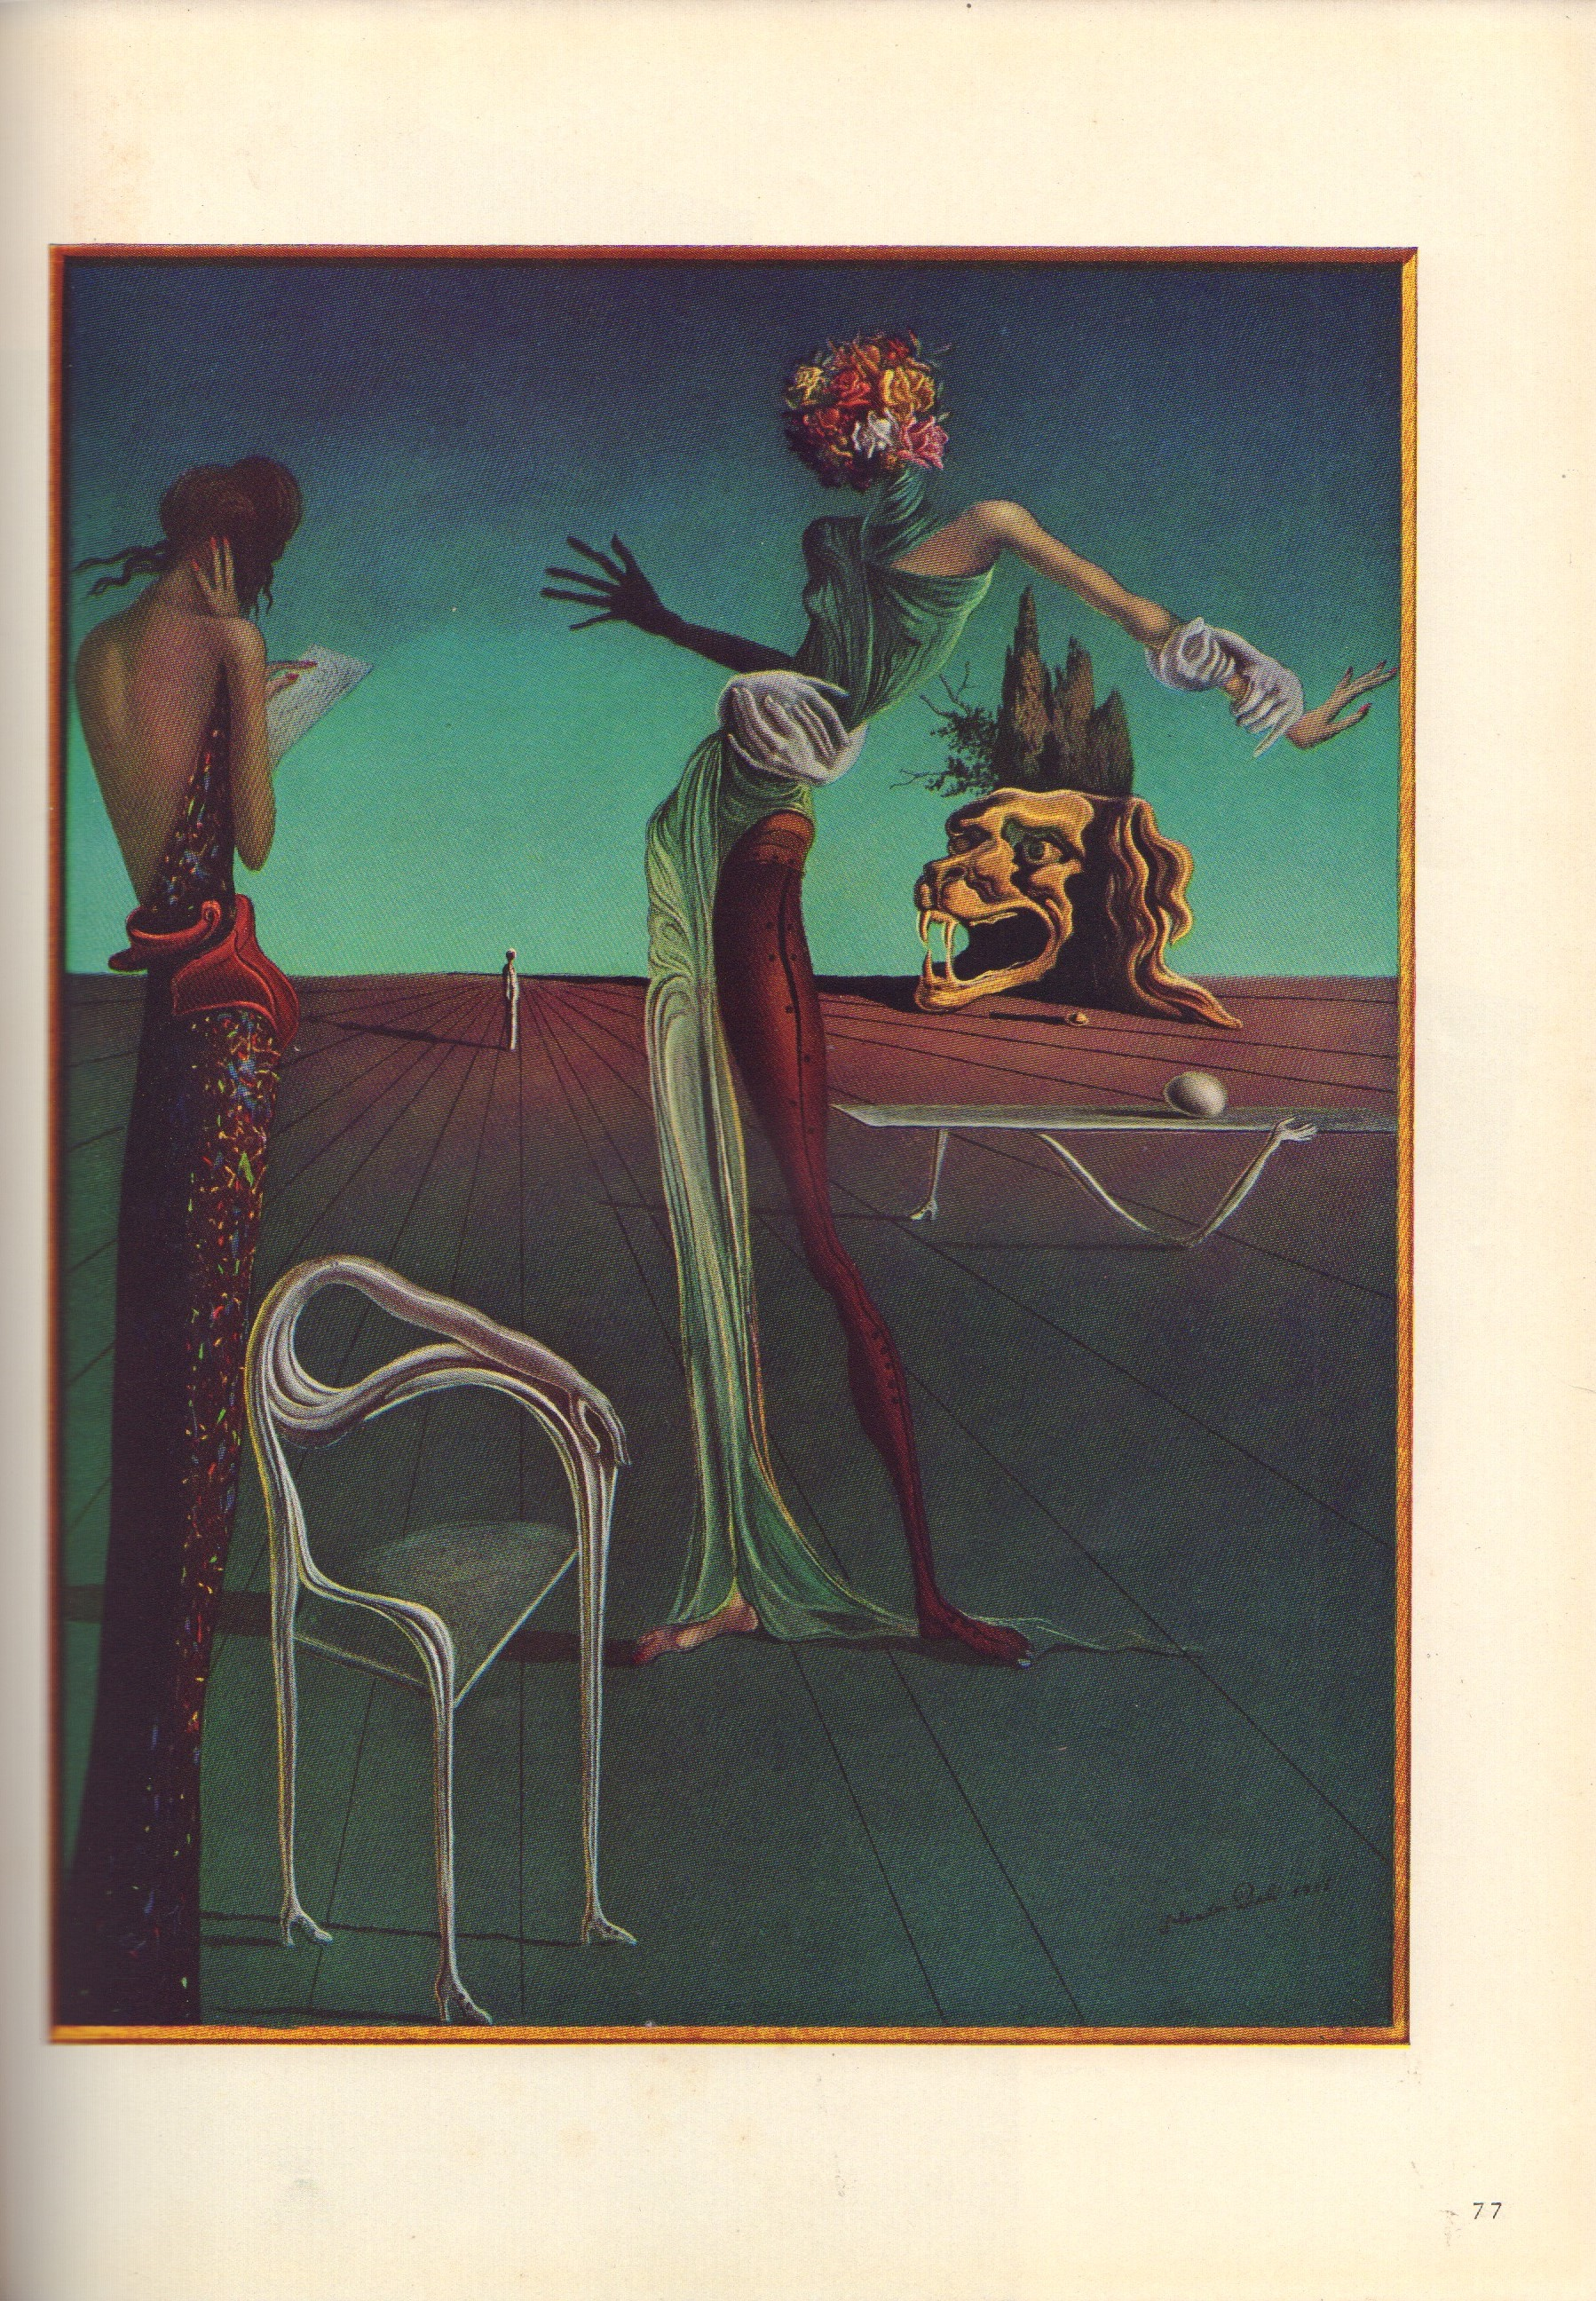 Image for Harper's Bazaar (Bazar) September 1935